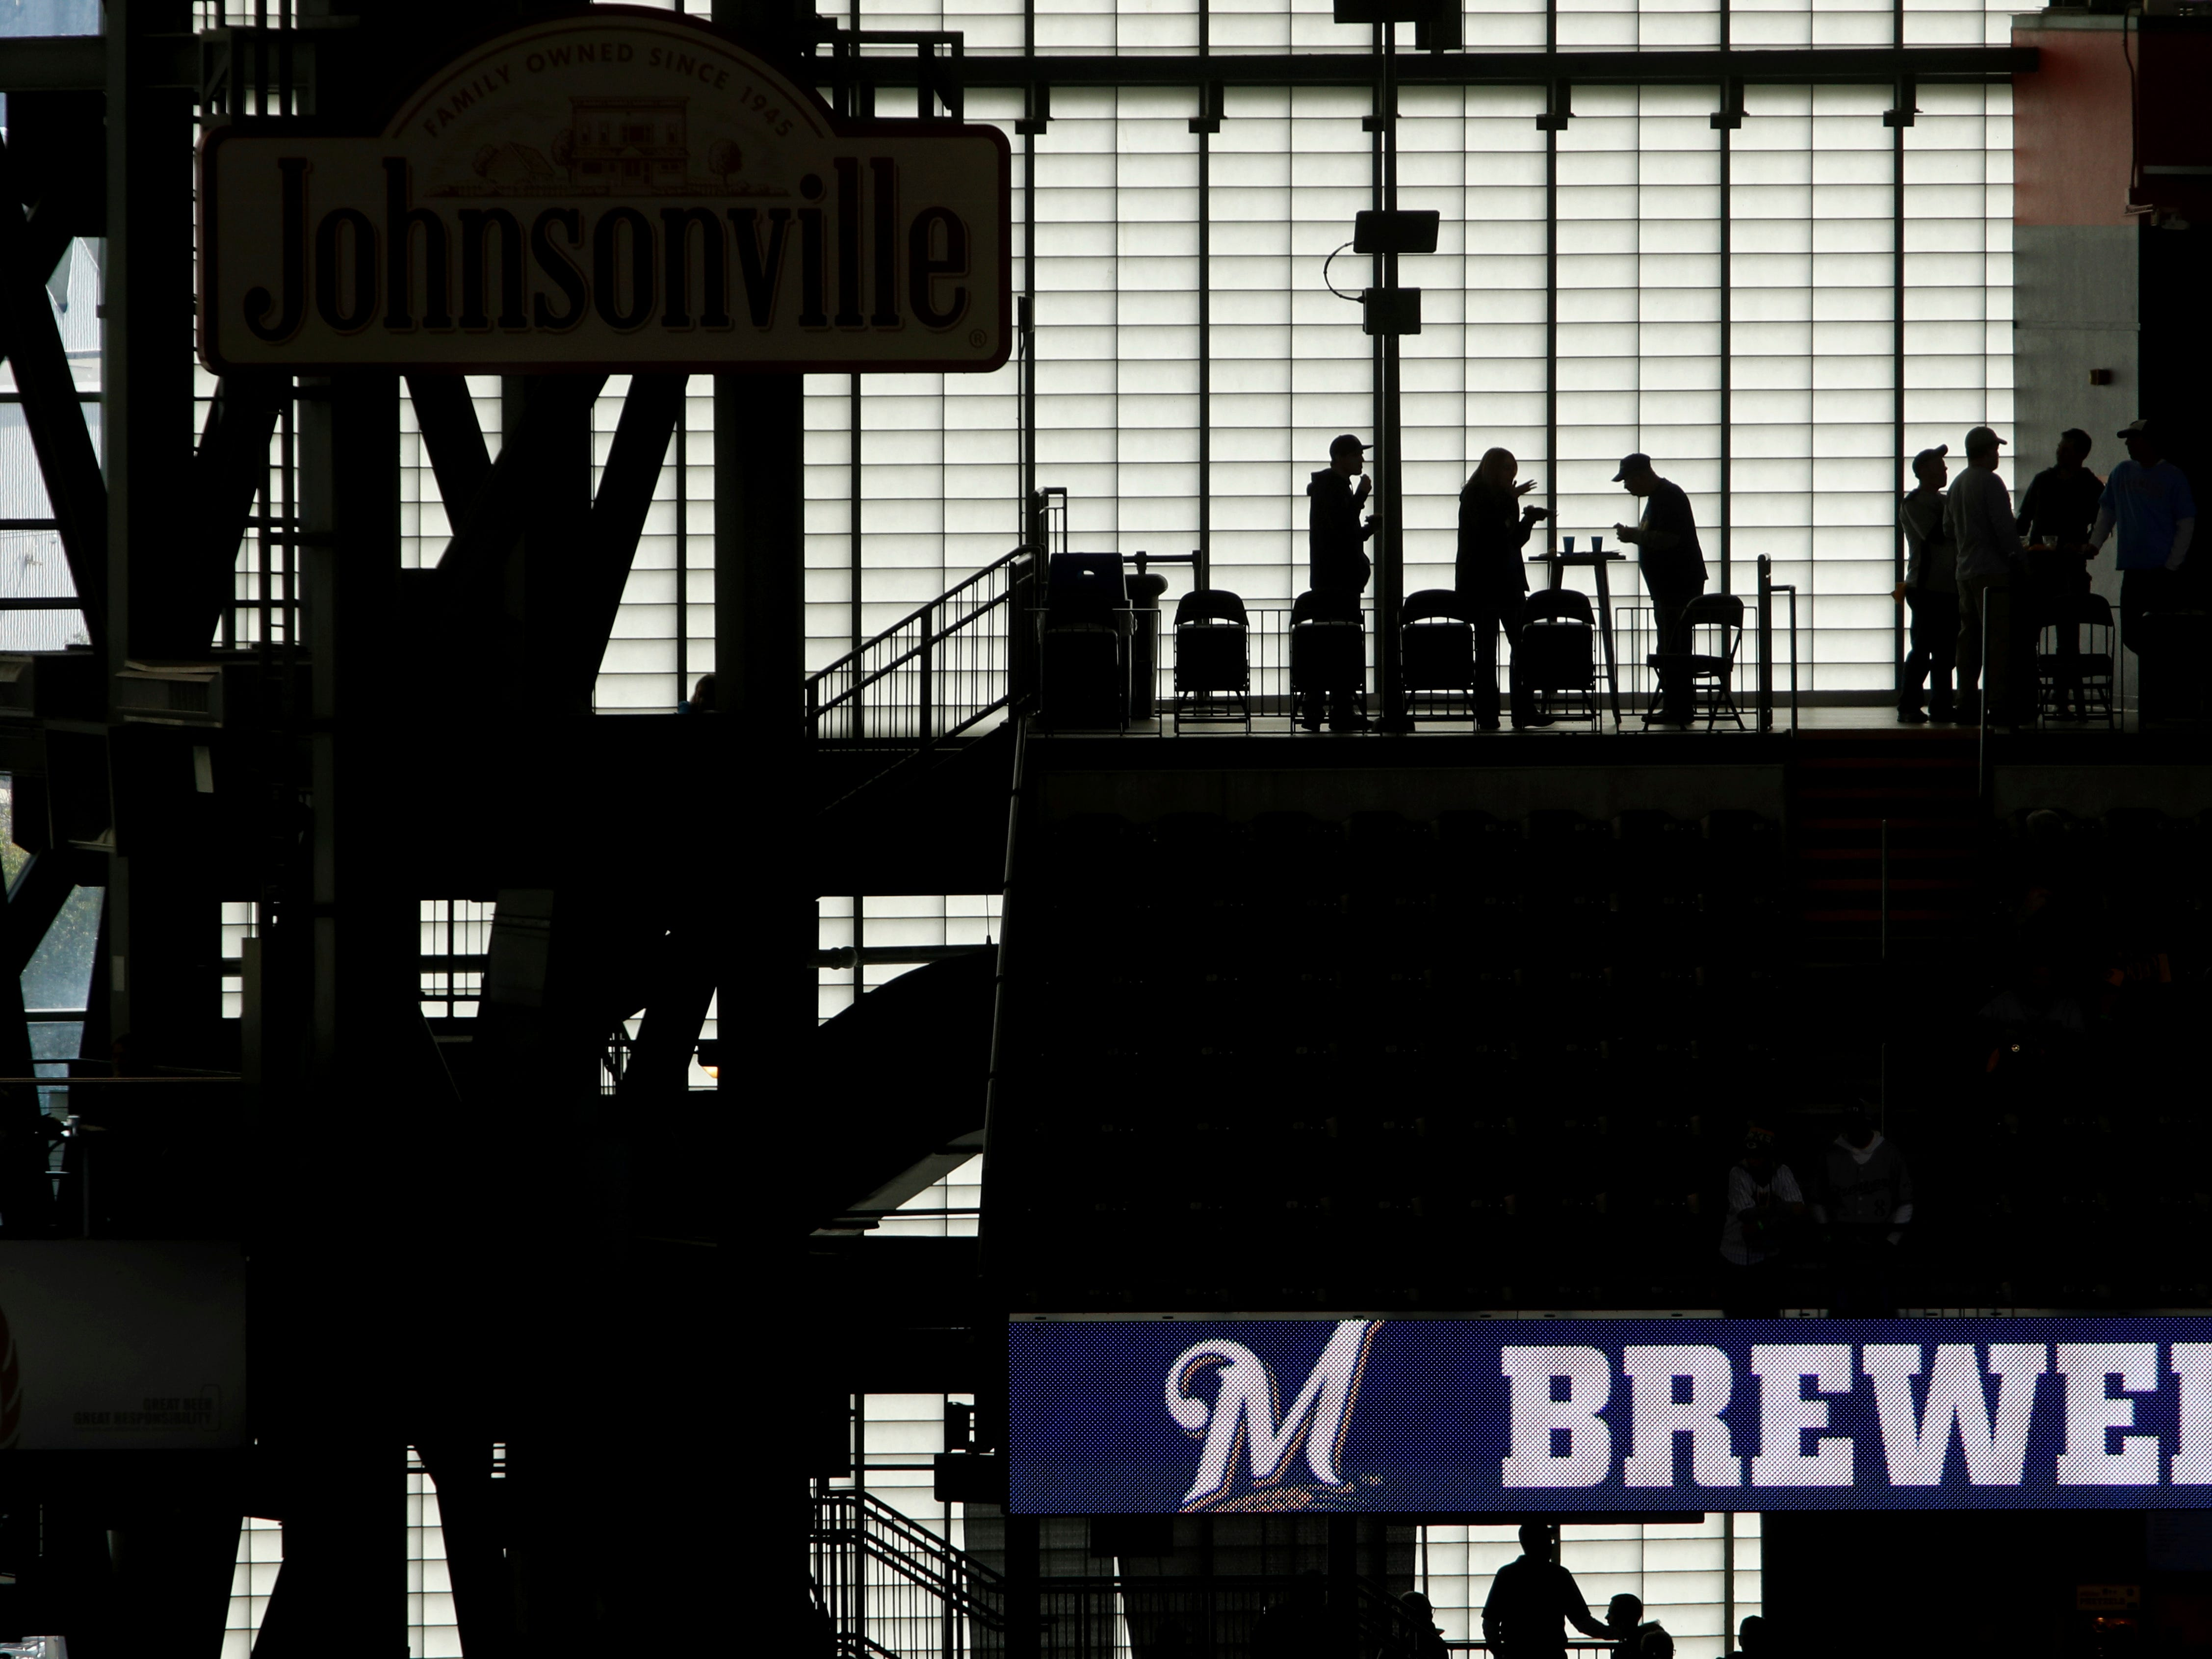 Fans arrive at Miller Park before Game 2 of the National League Championship Series baseball game Saturday between the Milwaukee Brewers and the Los Angeles Dodgers.